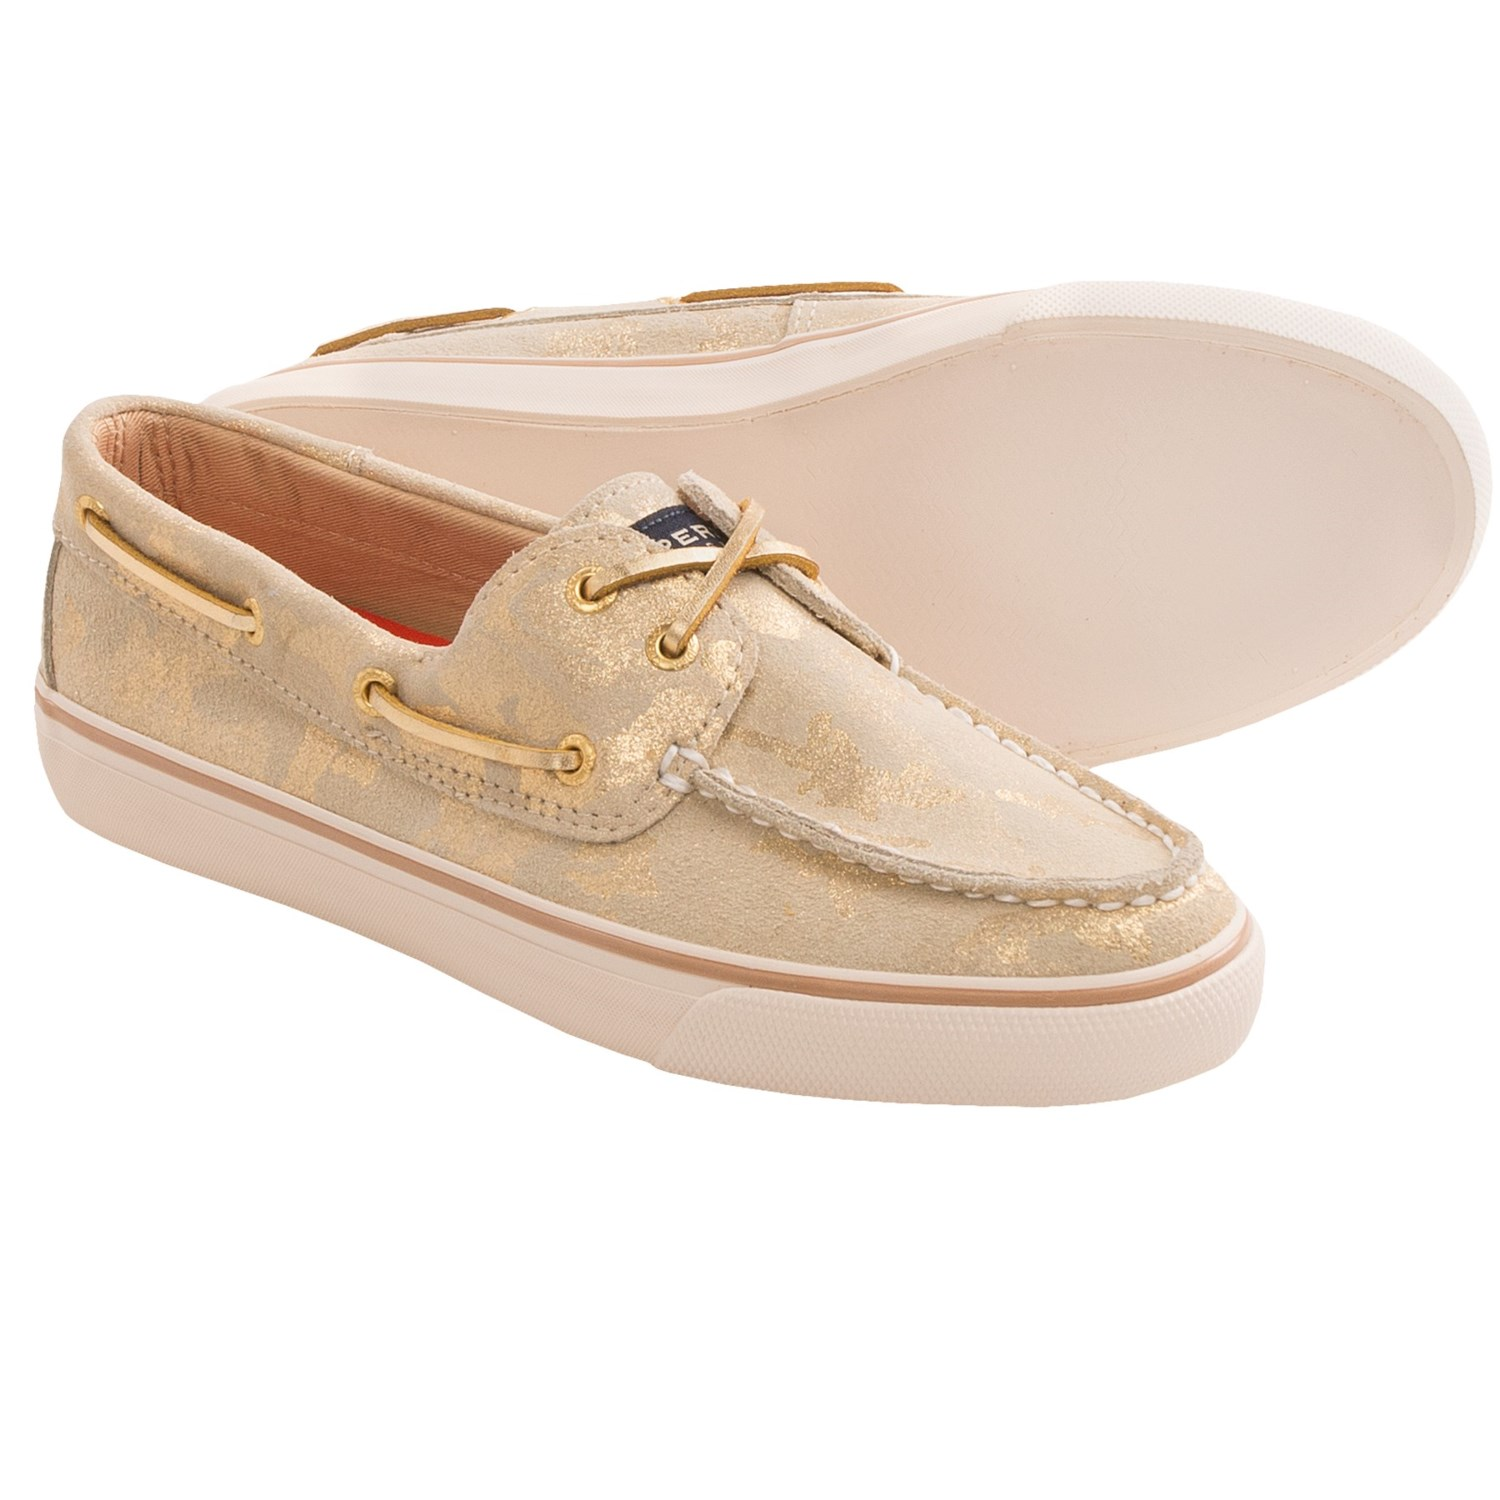 Womens Sperry Top Sider Bahama Light Rose Pink Canvas Boat S